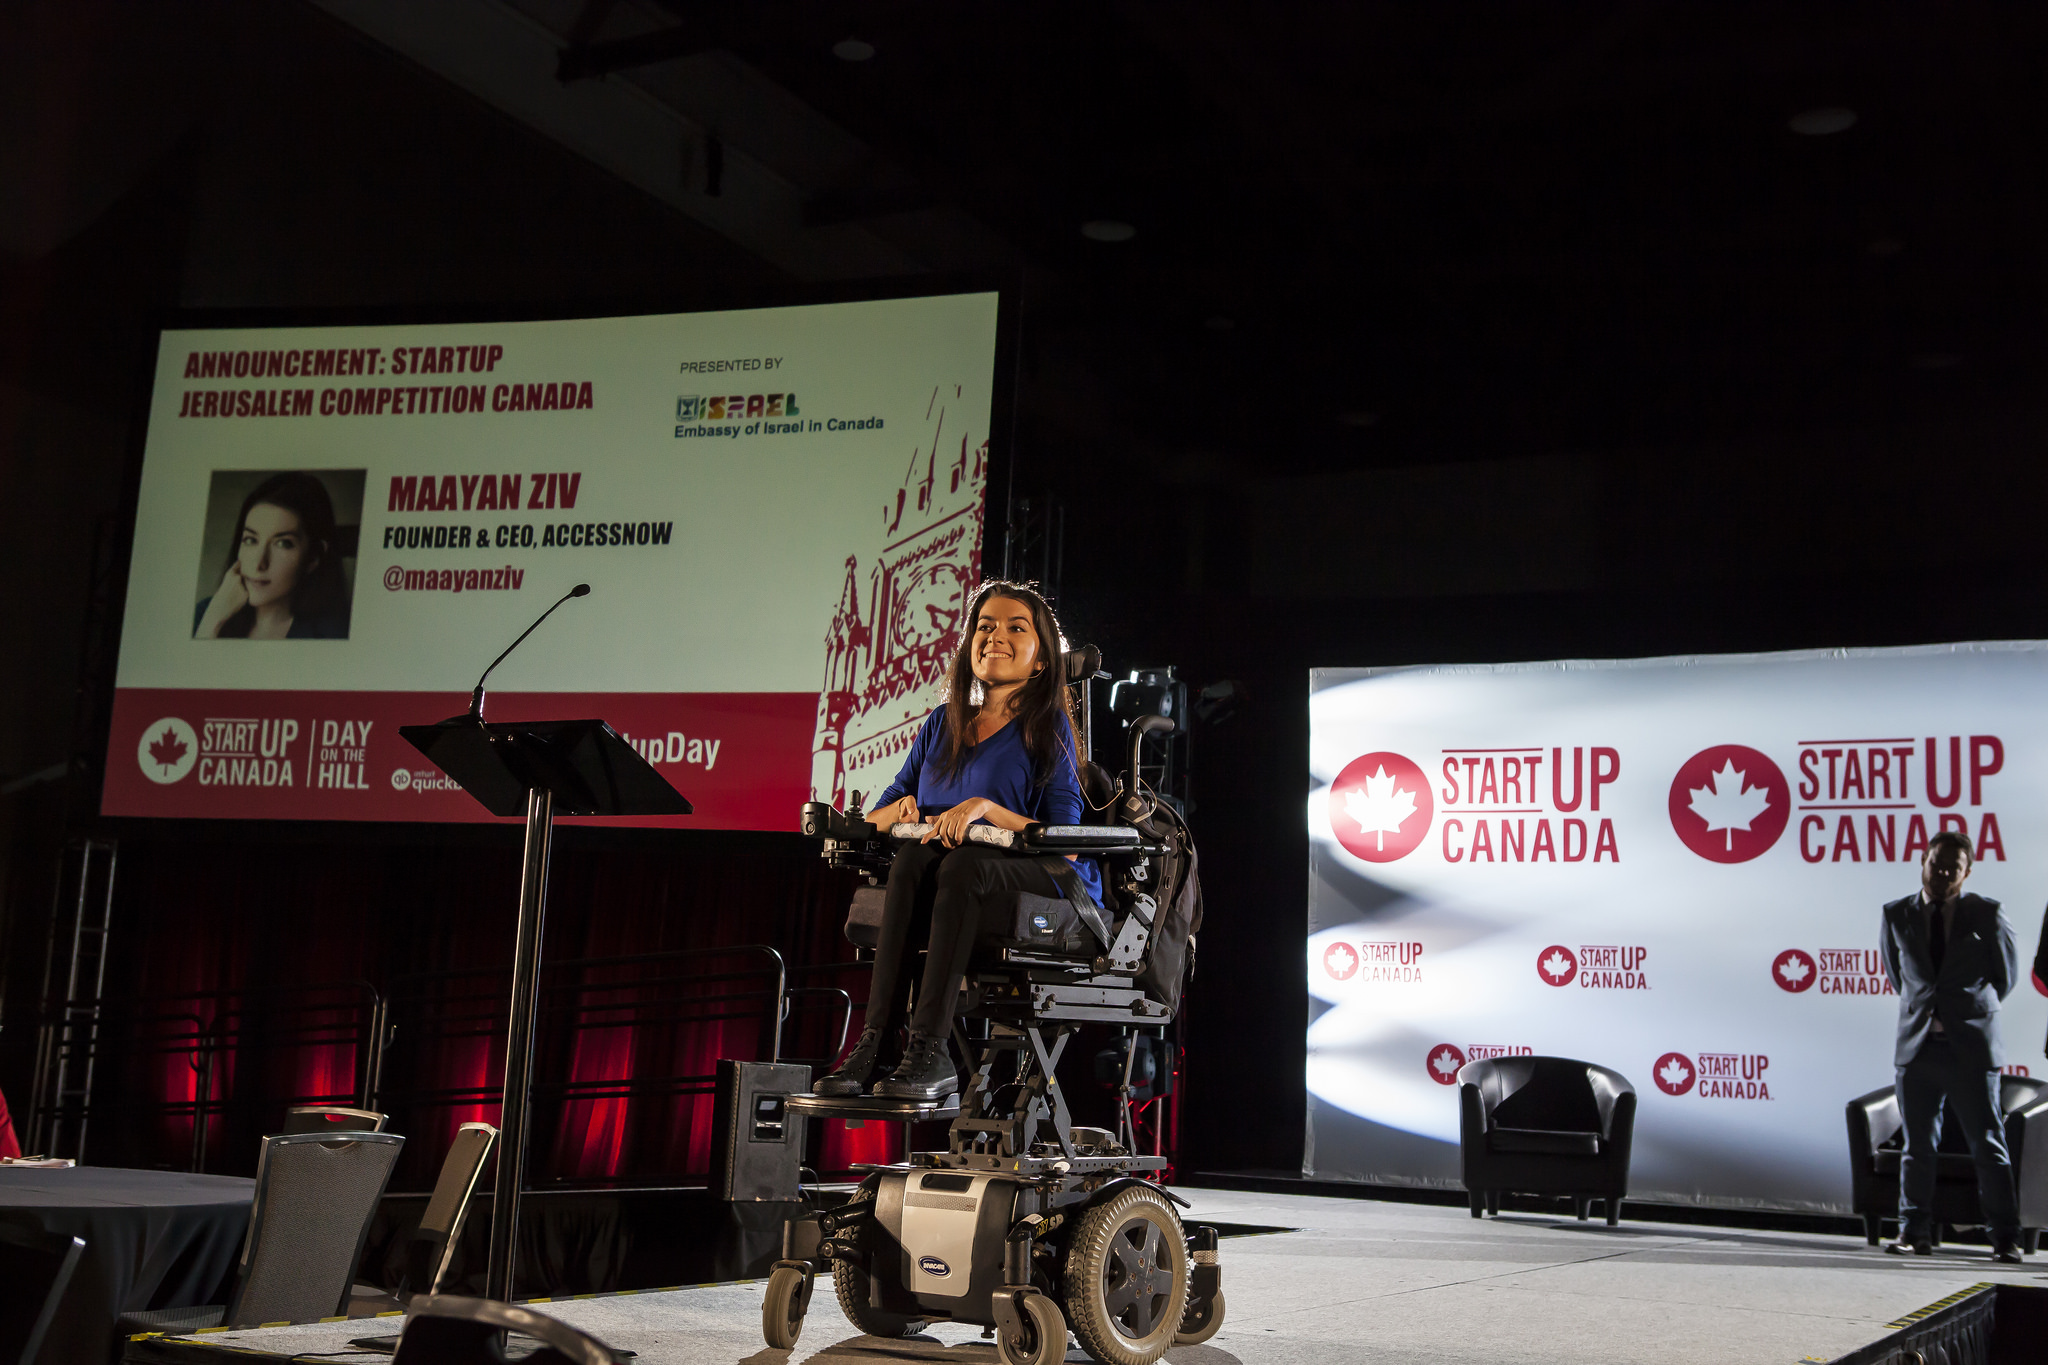 "maayan smiles on stage at the startup canada day on the hill event. behind her is a large screen that reads ""Announcement: Startup Jerusalem Competition Canada"" in red"